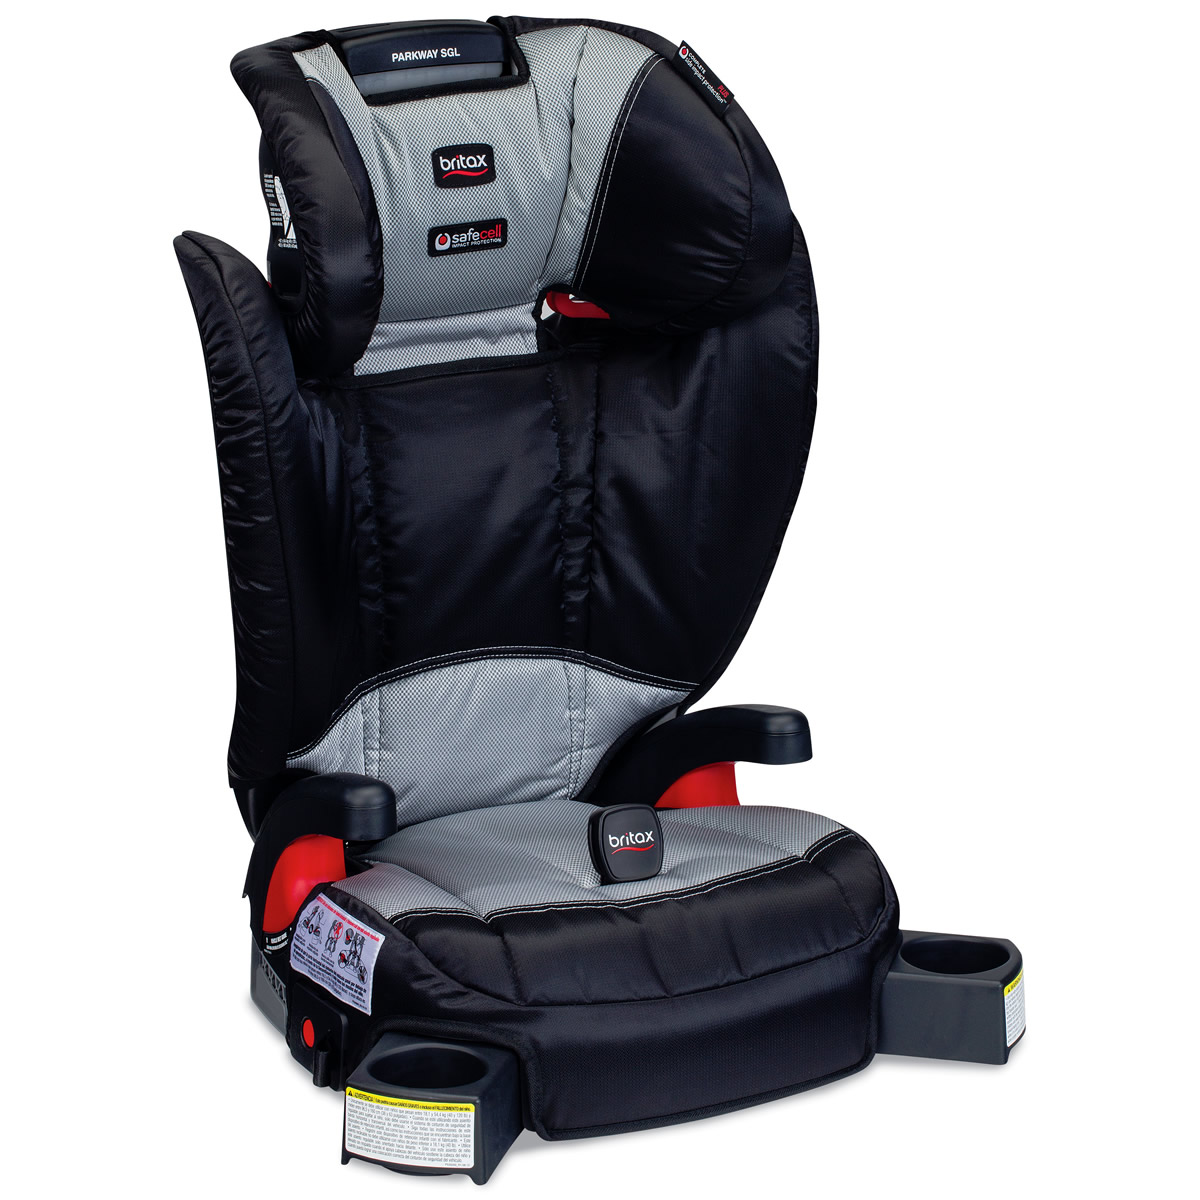 Britax Parkway SGL G11 Belt Positioning Booster Car Seat